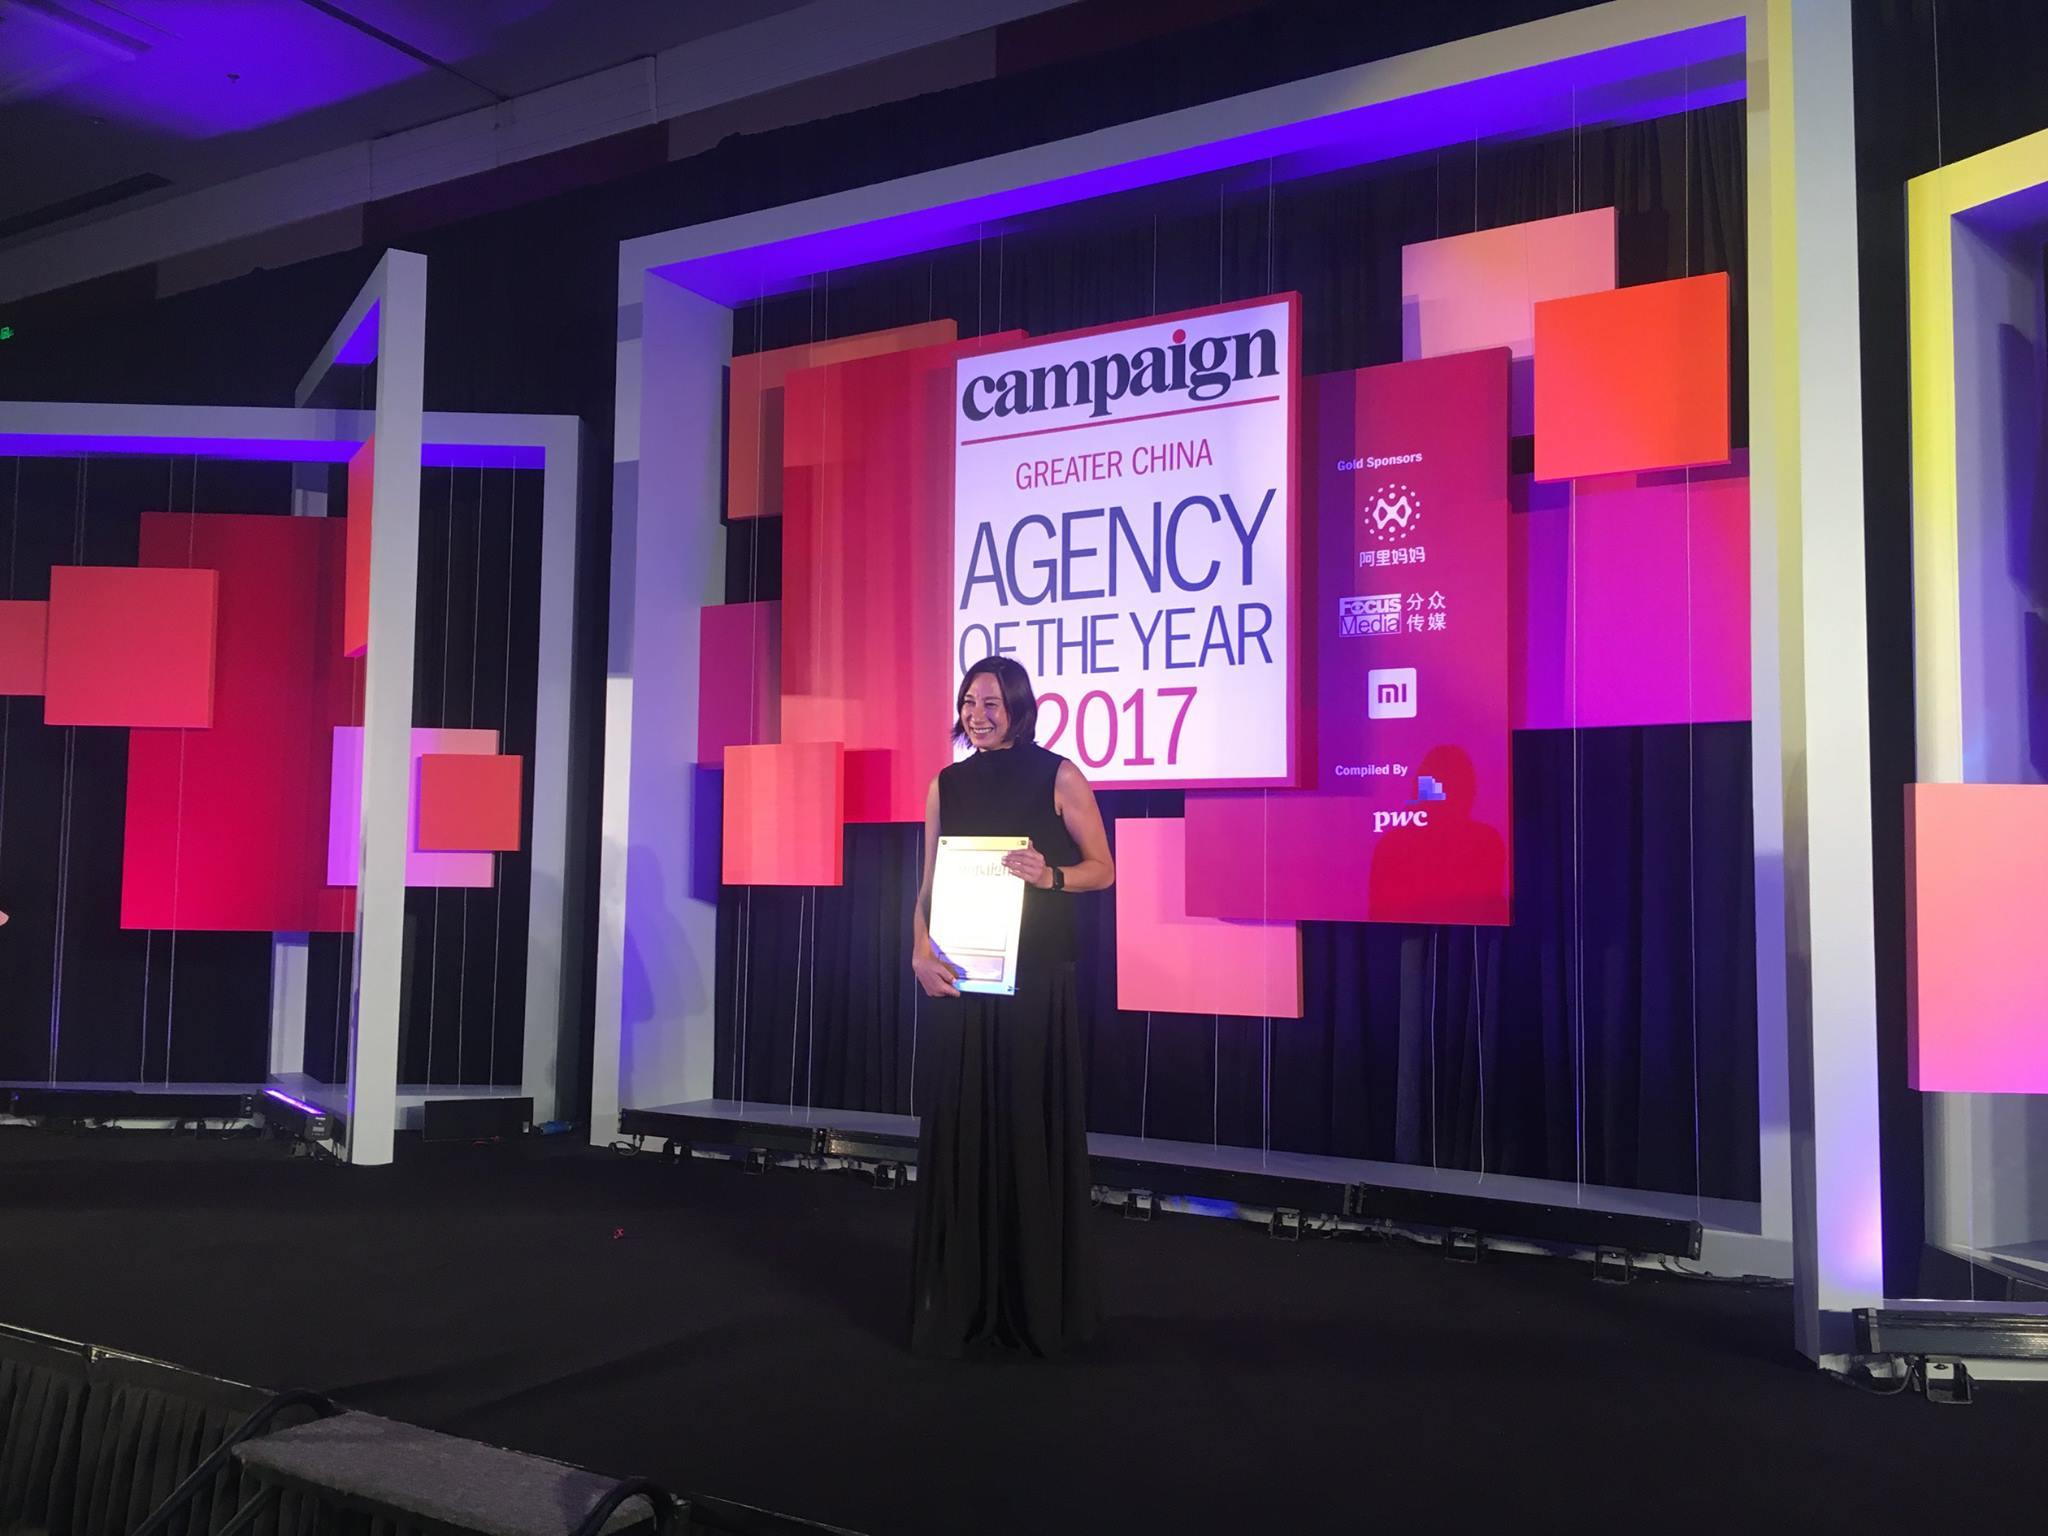 TBWA\Asia Pacific wraps up the year with an impressive performance at Campaign Agency of the Year Awards